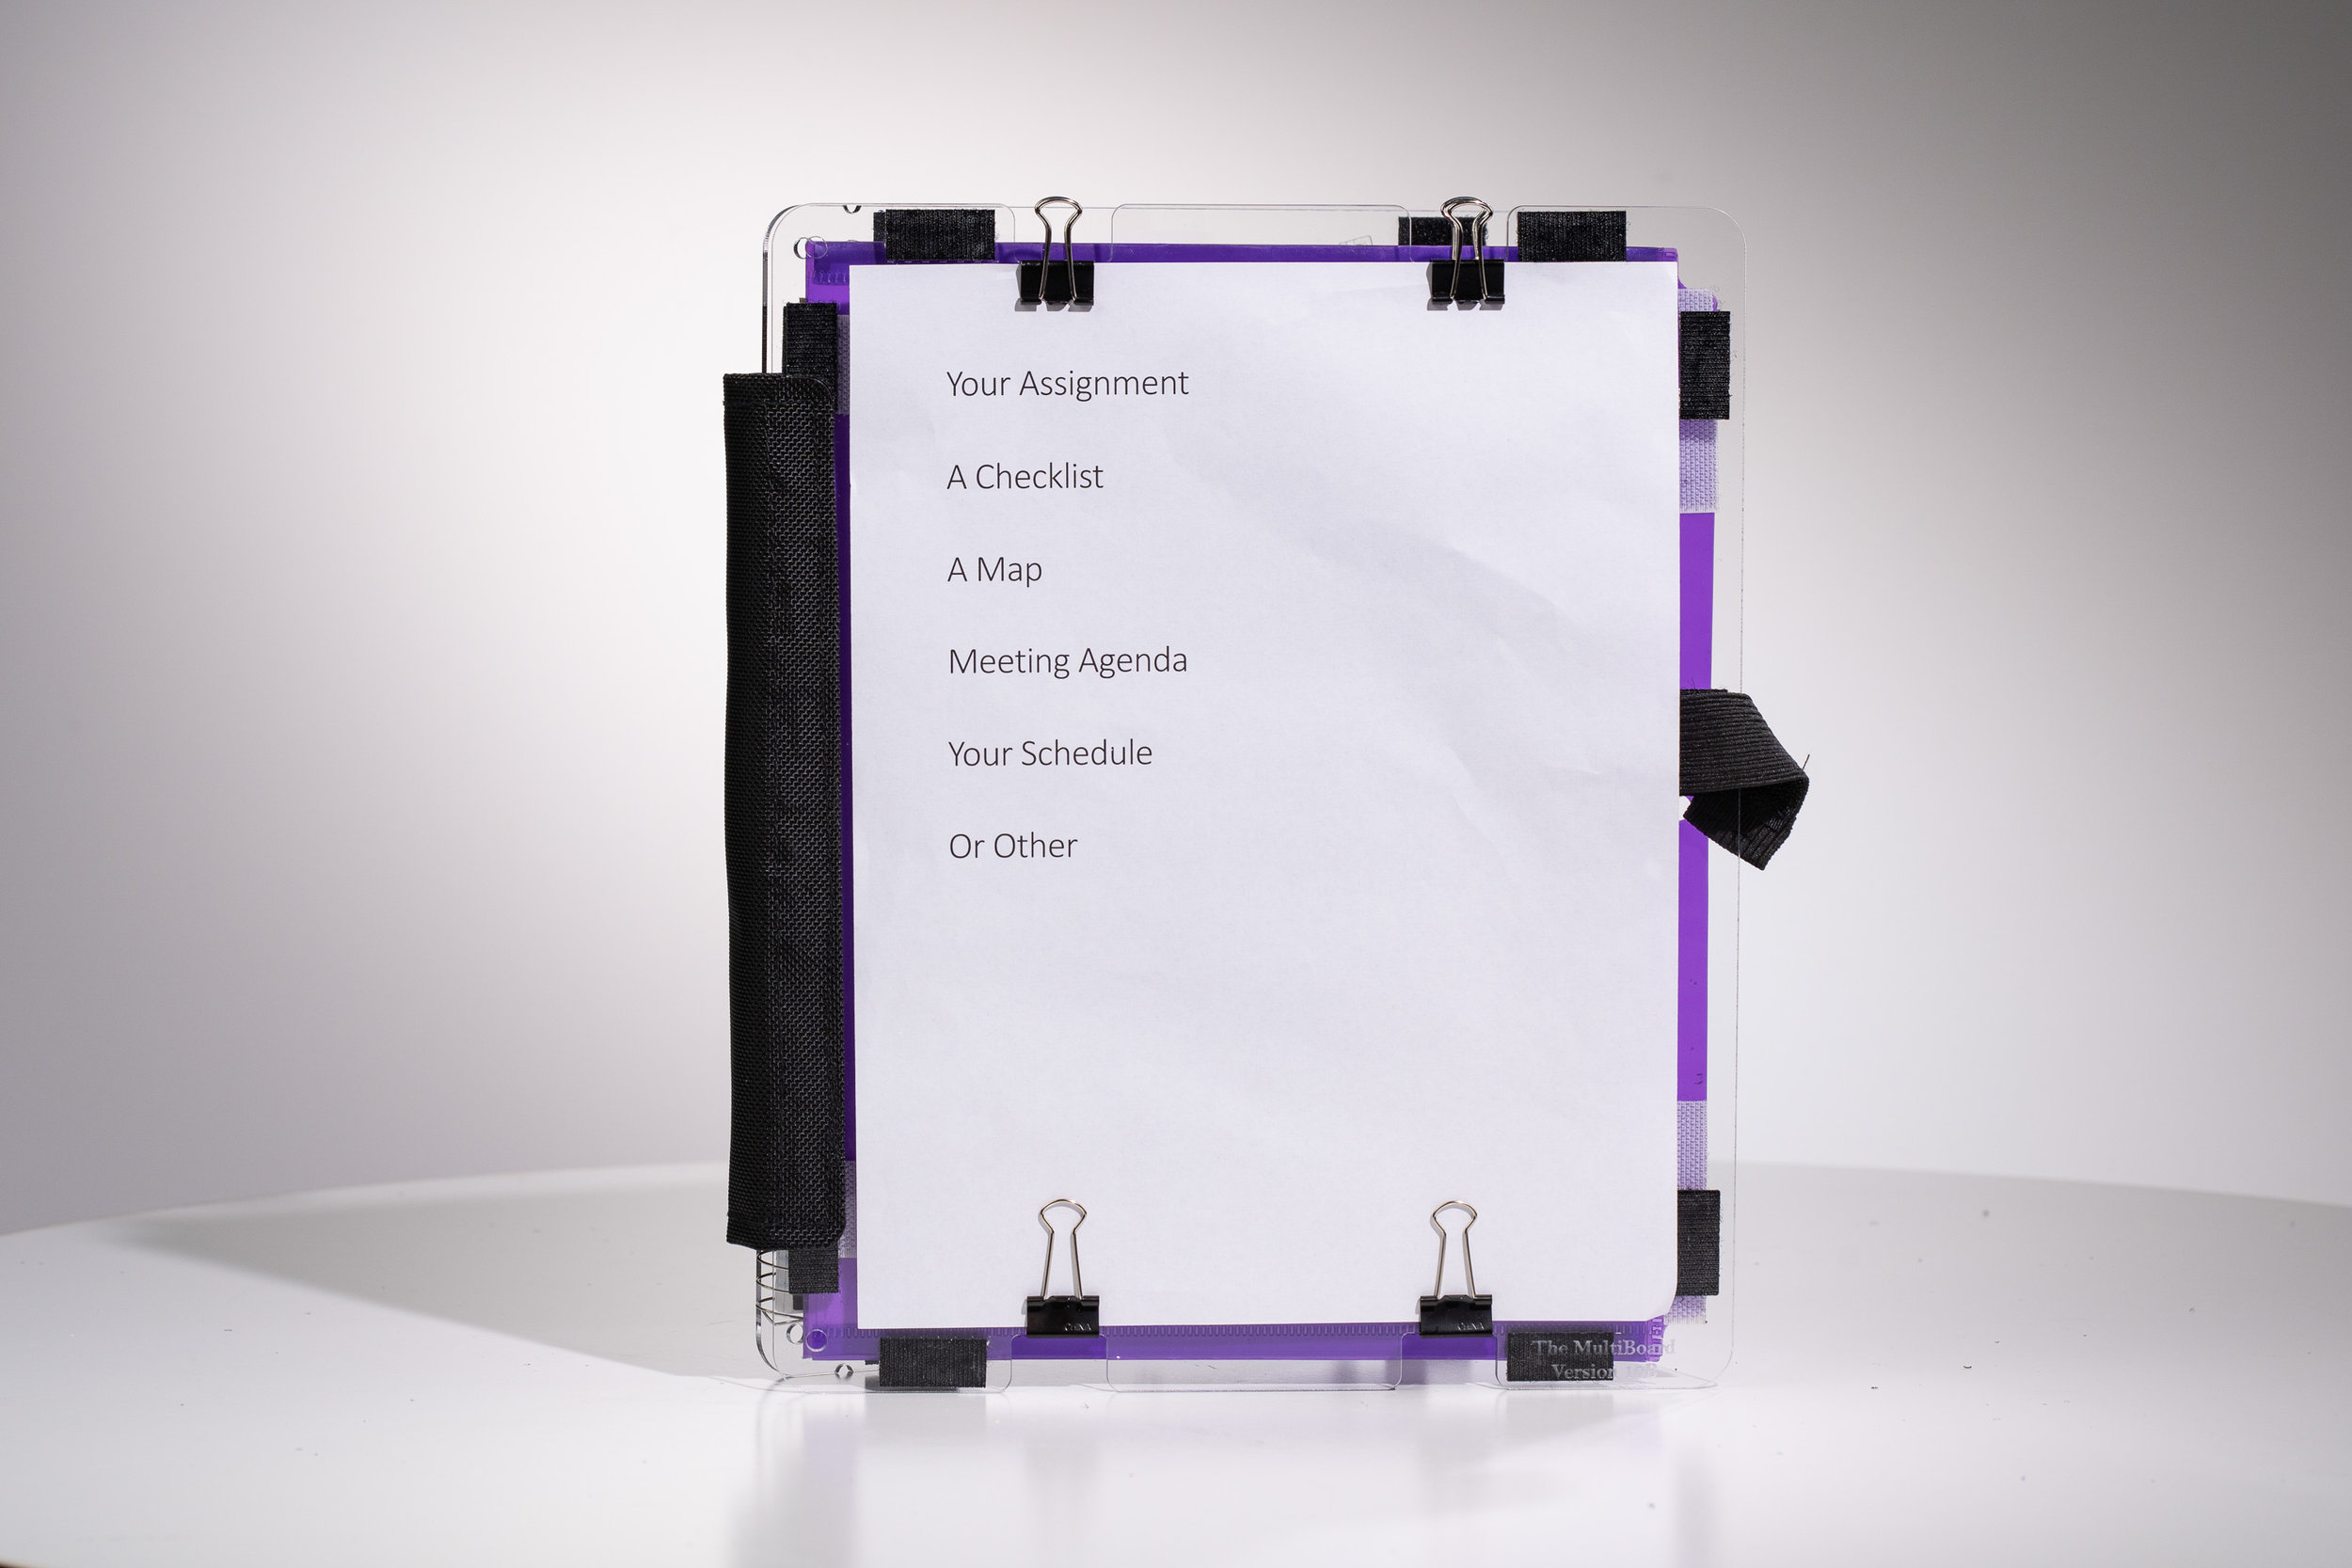 Clipboard mode: Indents on the front allow the use of binder clips